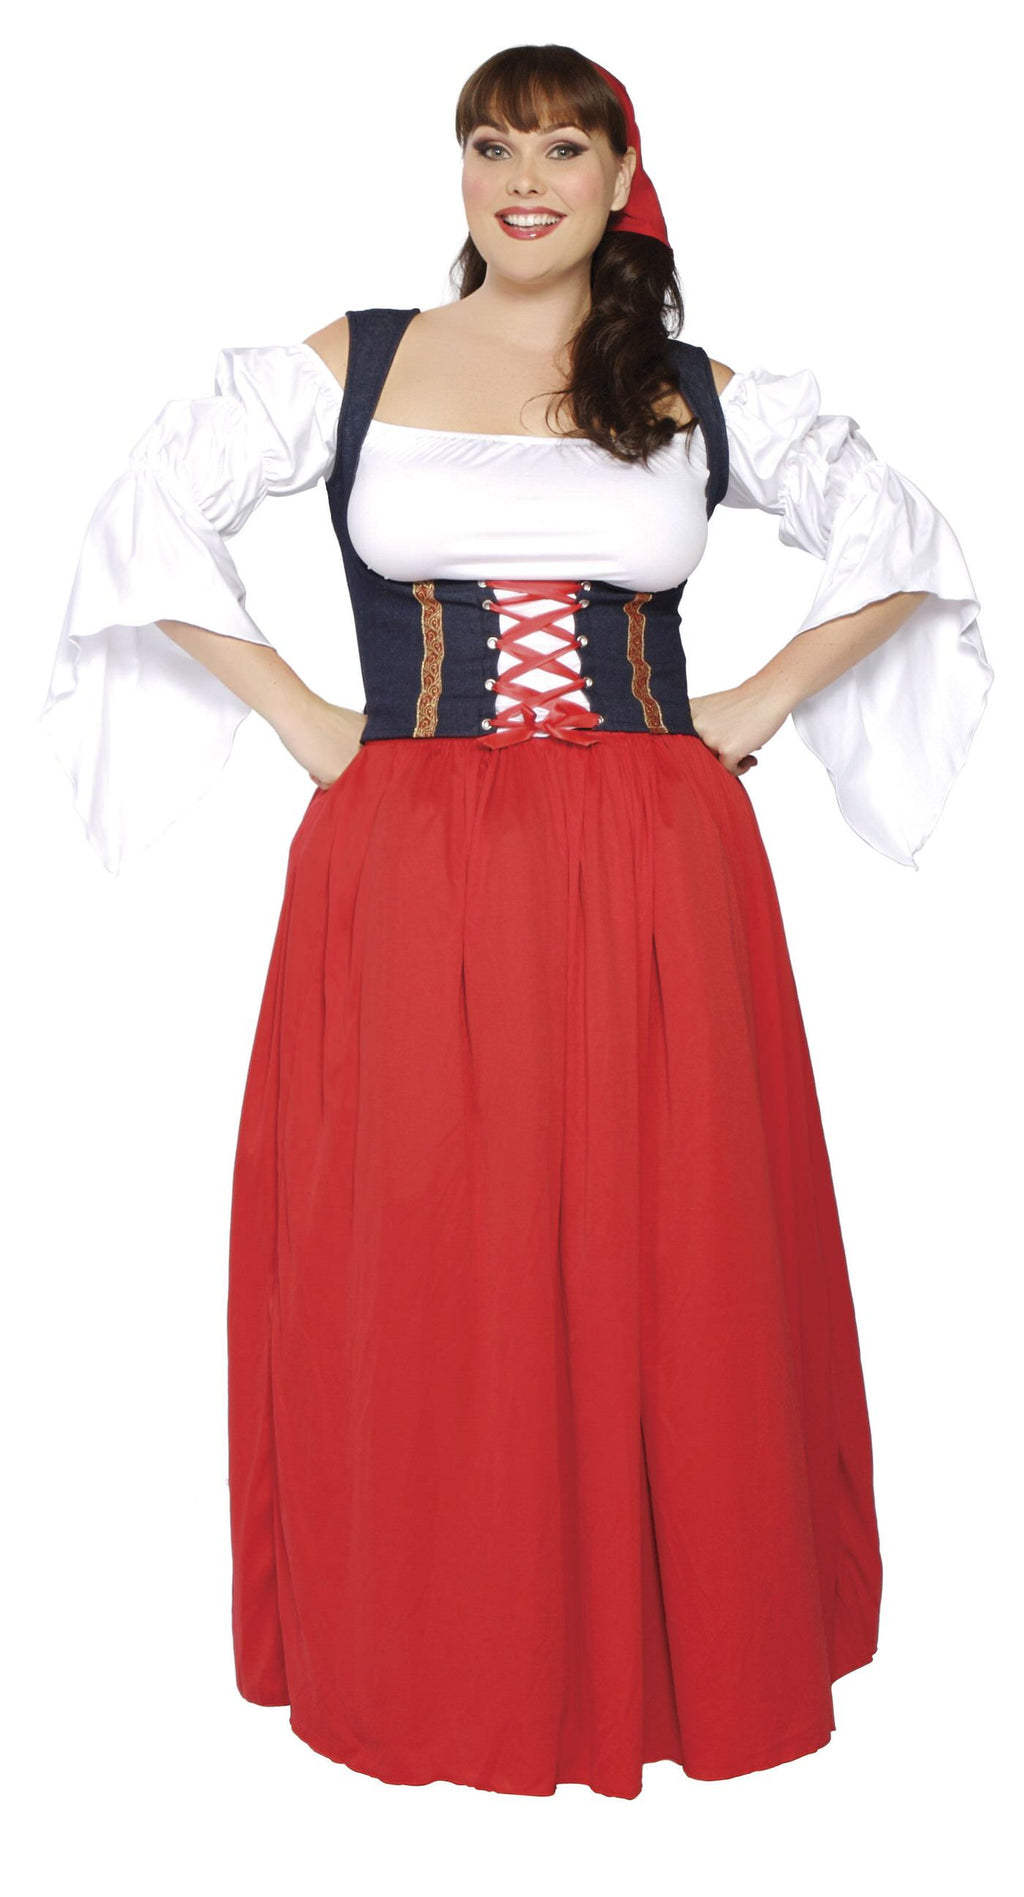 4-Piece-Swiss-Beer-Girl-Oktoberfest-Long-Dress-Costume